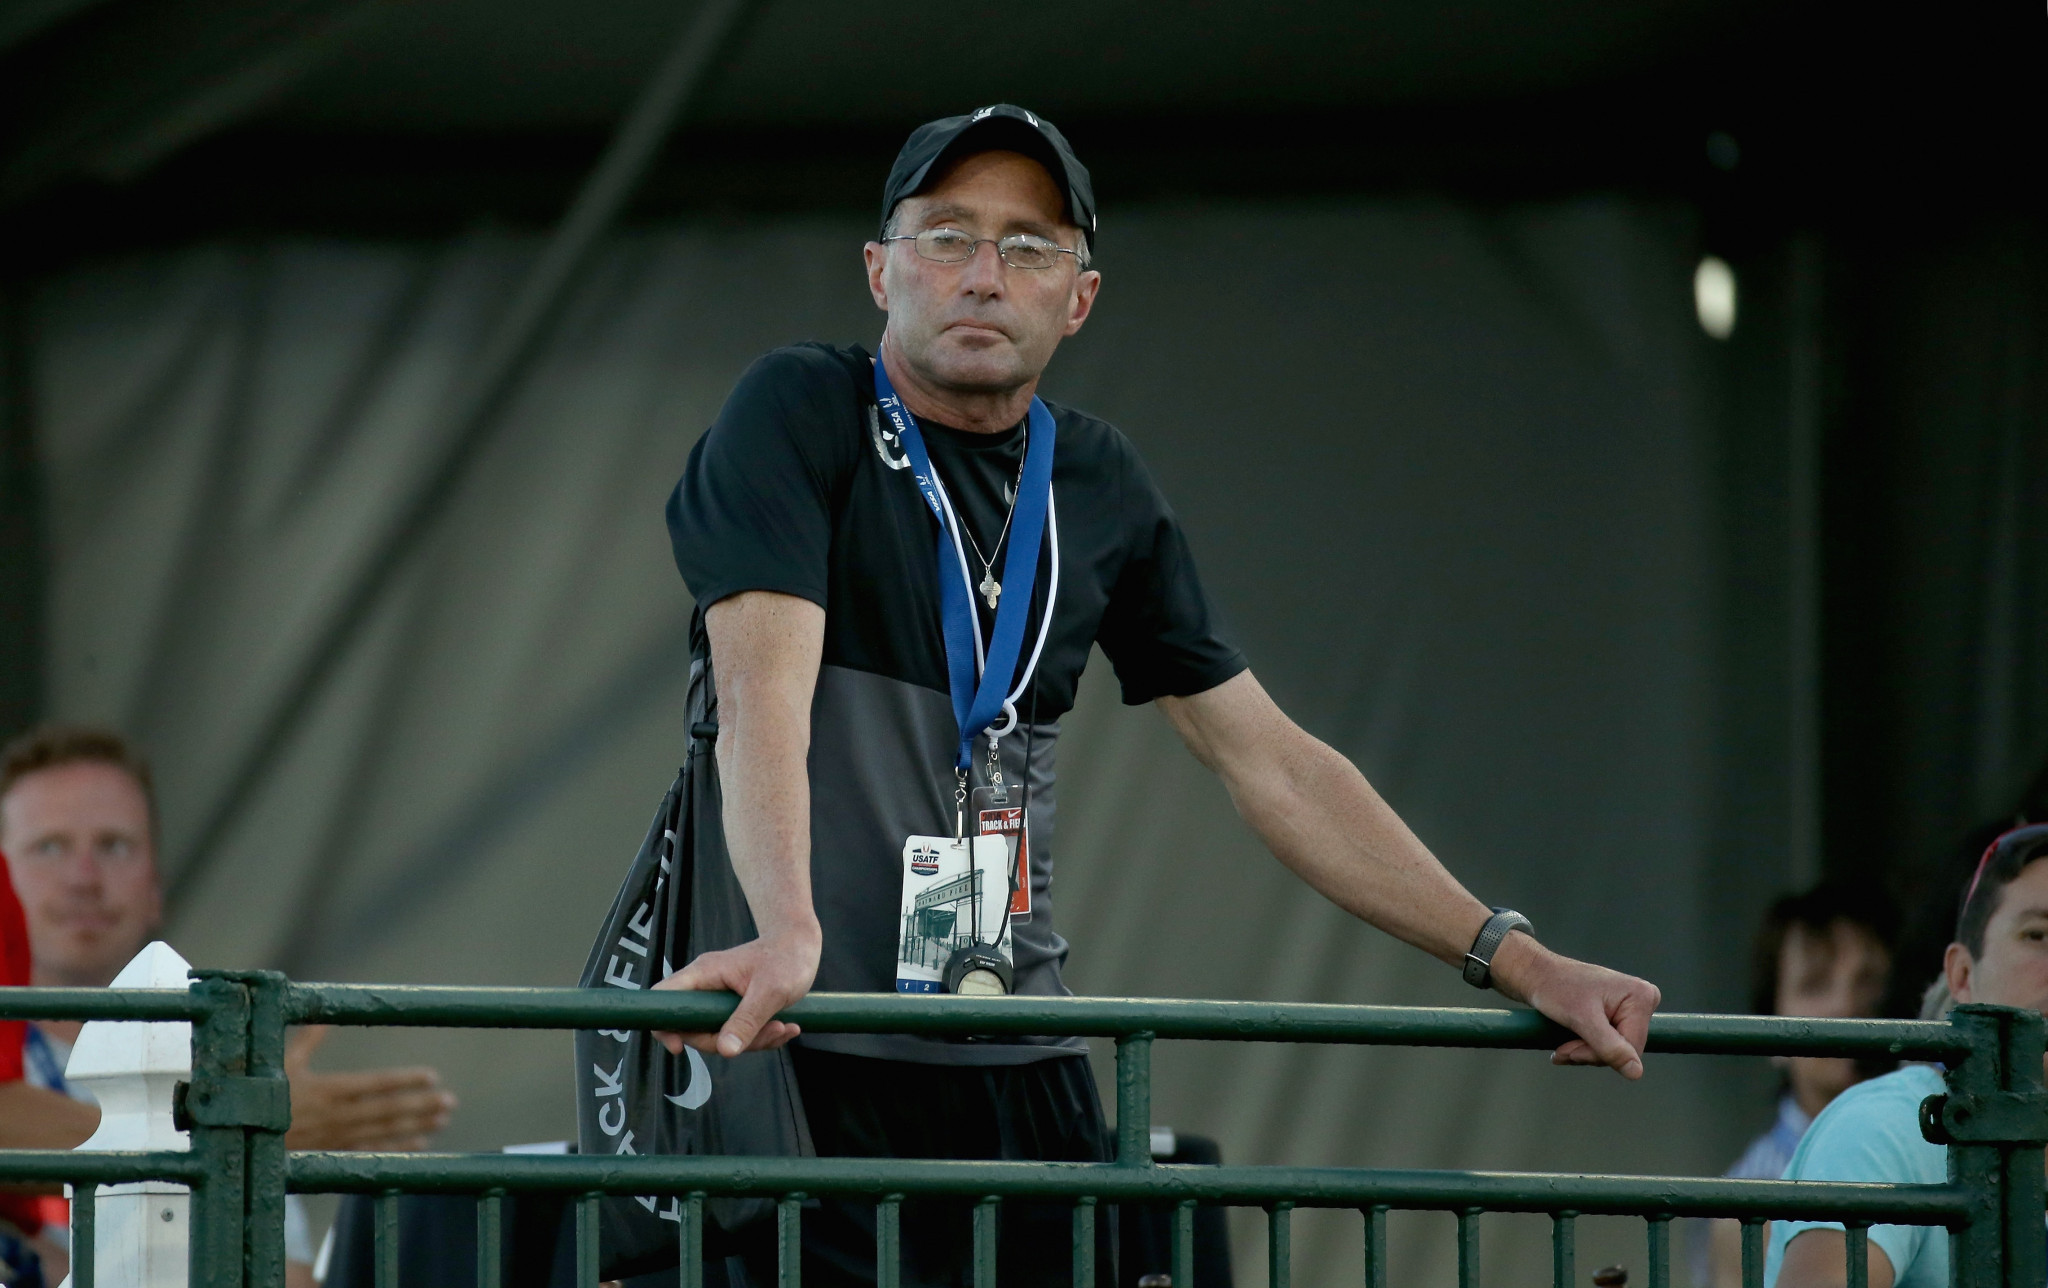 Salazar's name removed from Nike building after lifetime ban by SafeSport